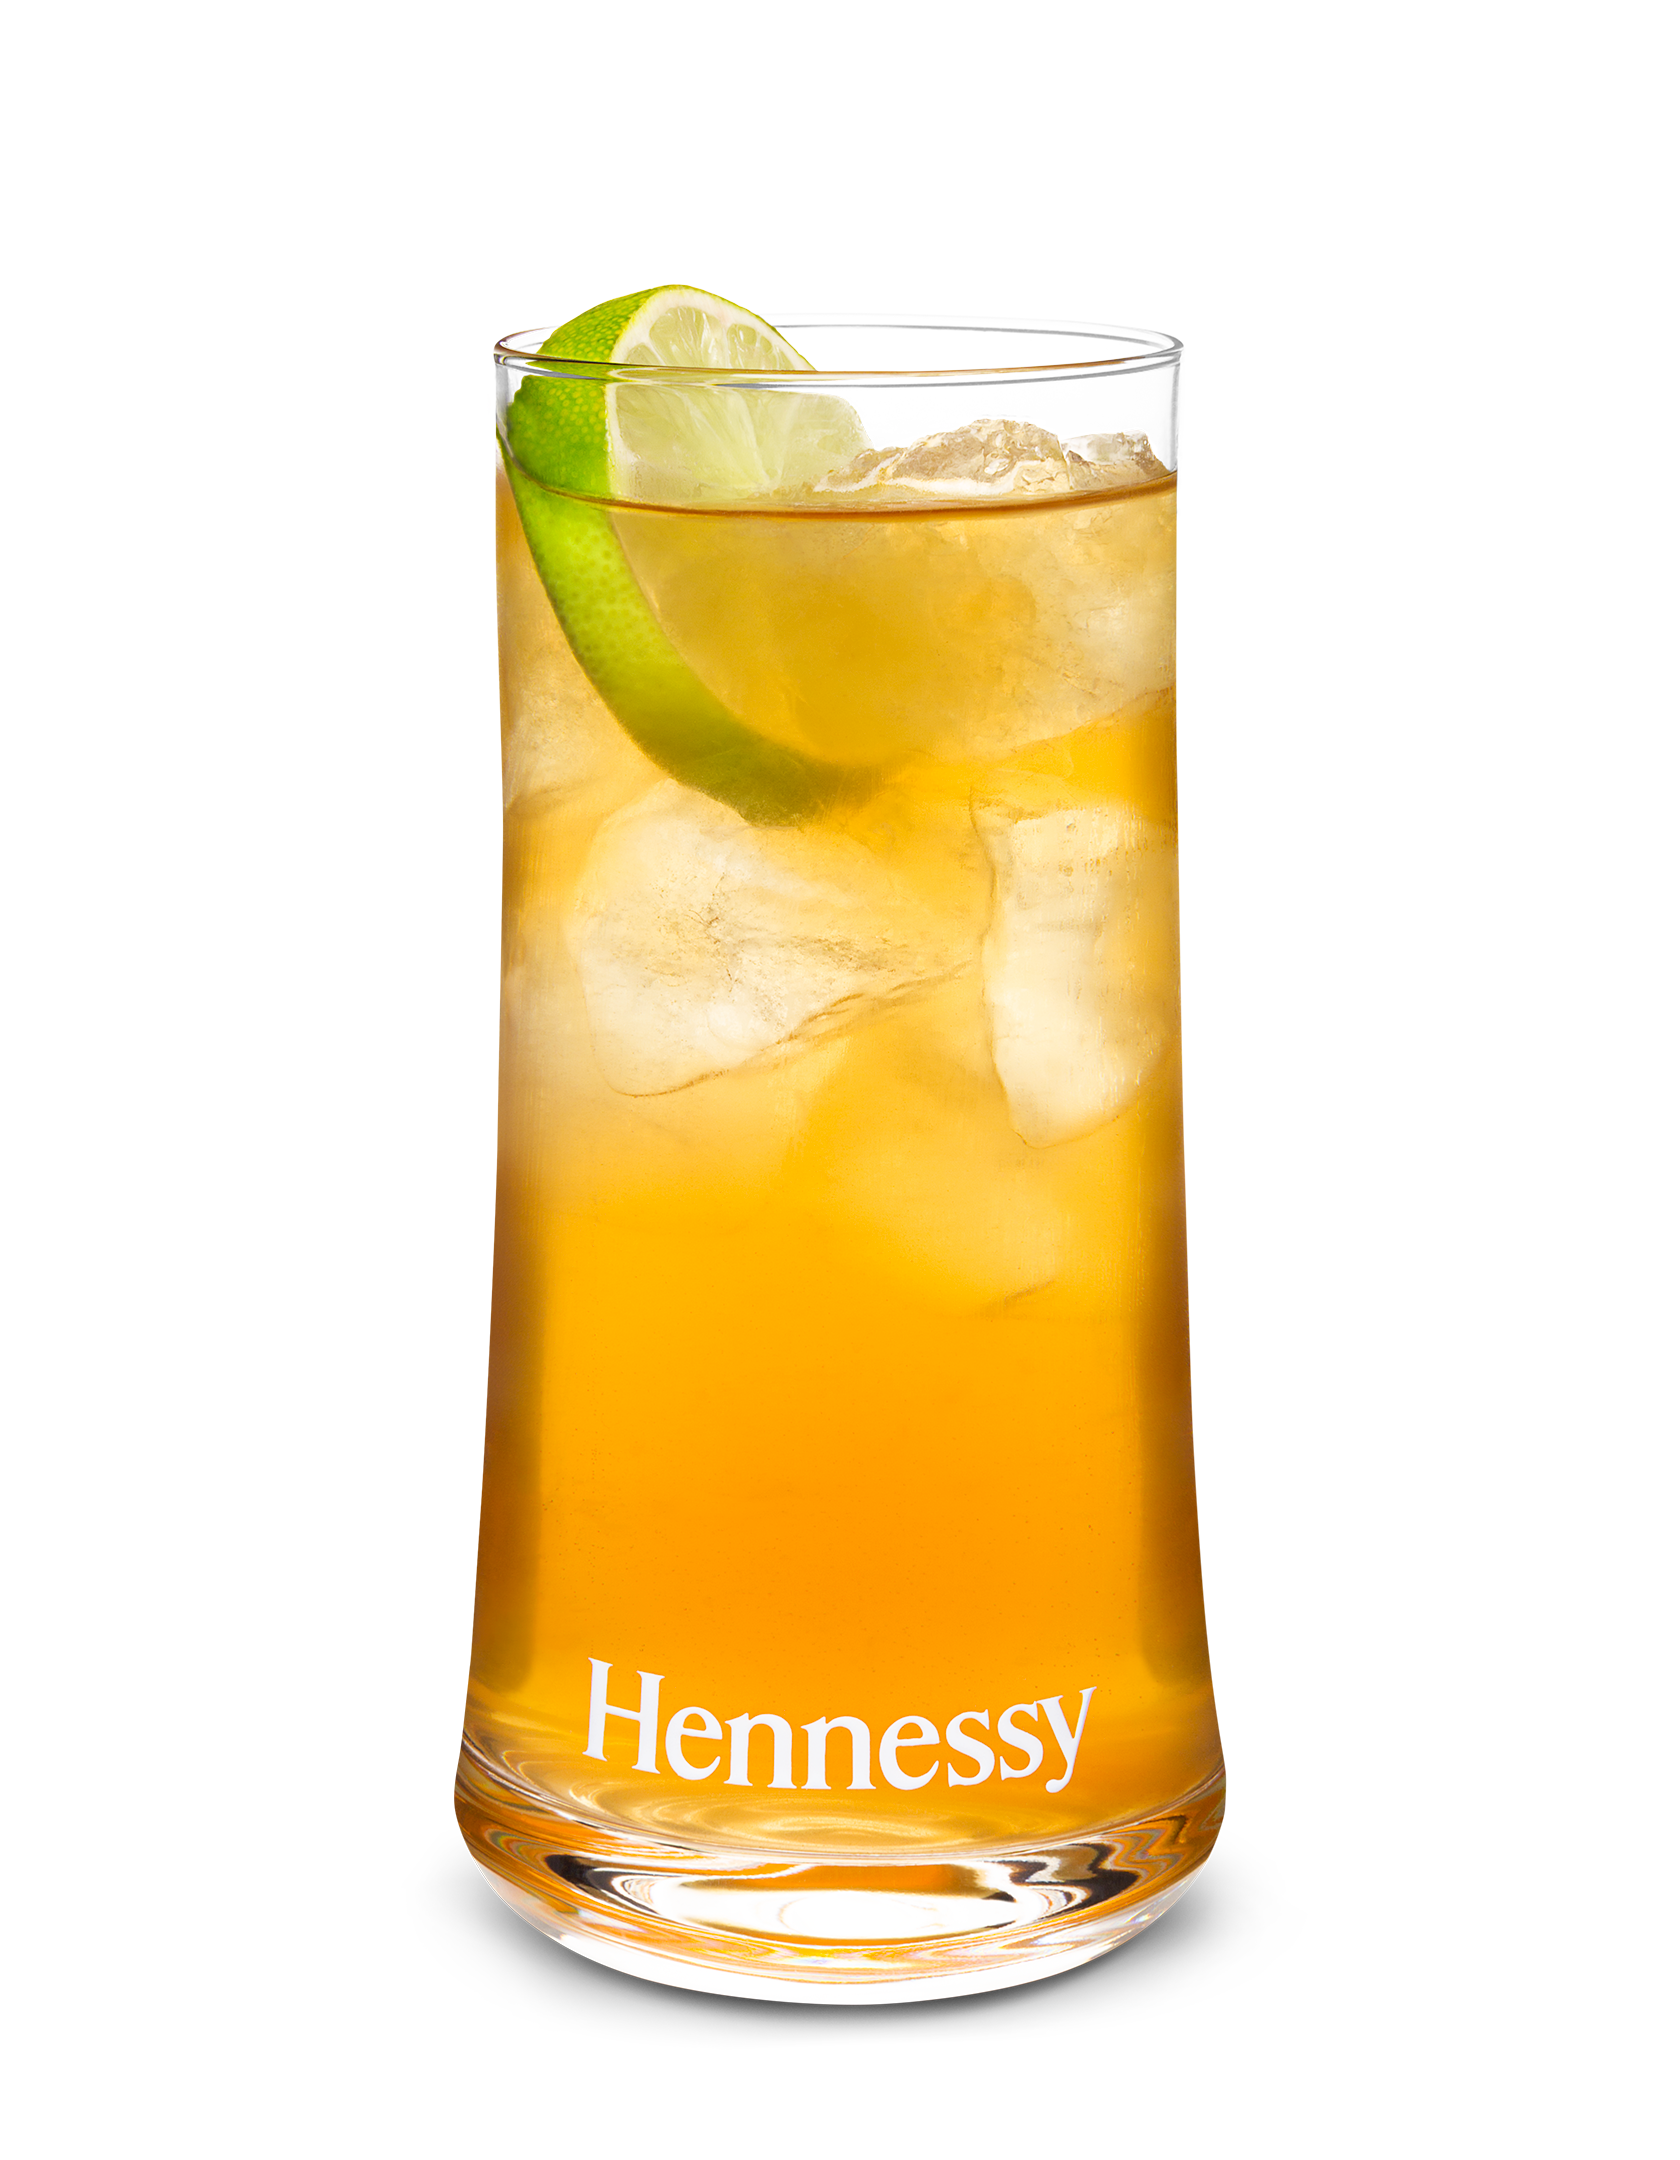 448-THE-HENNESSY-LIQUORICE-GINGER-SIMPL-RVB.png